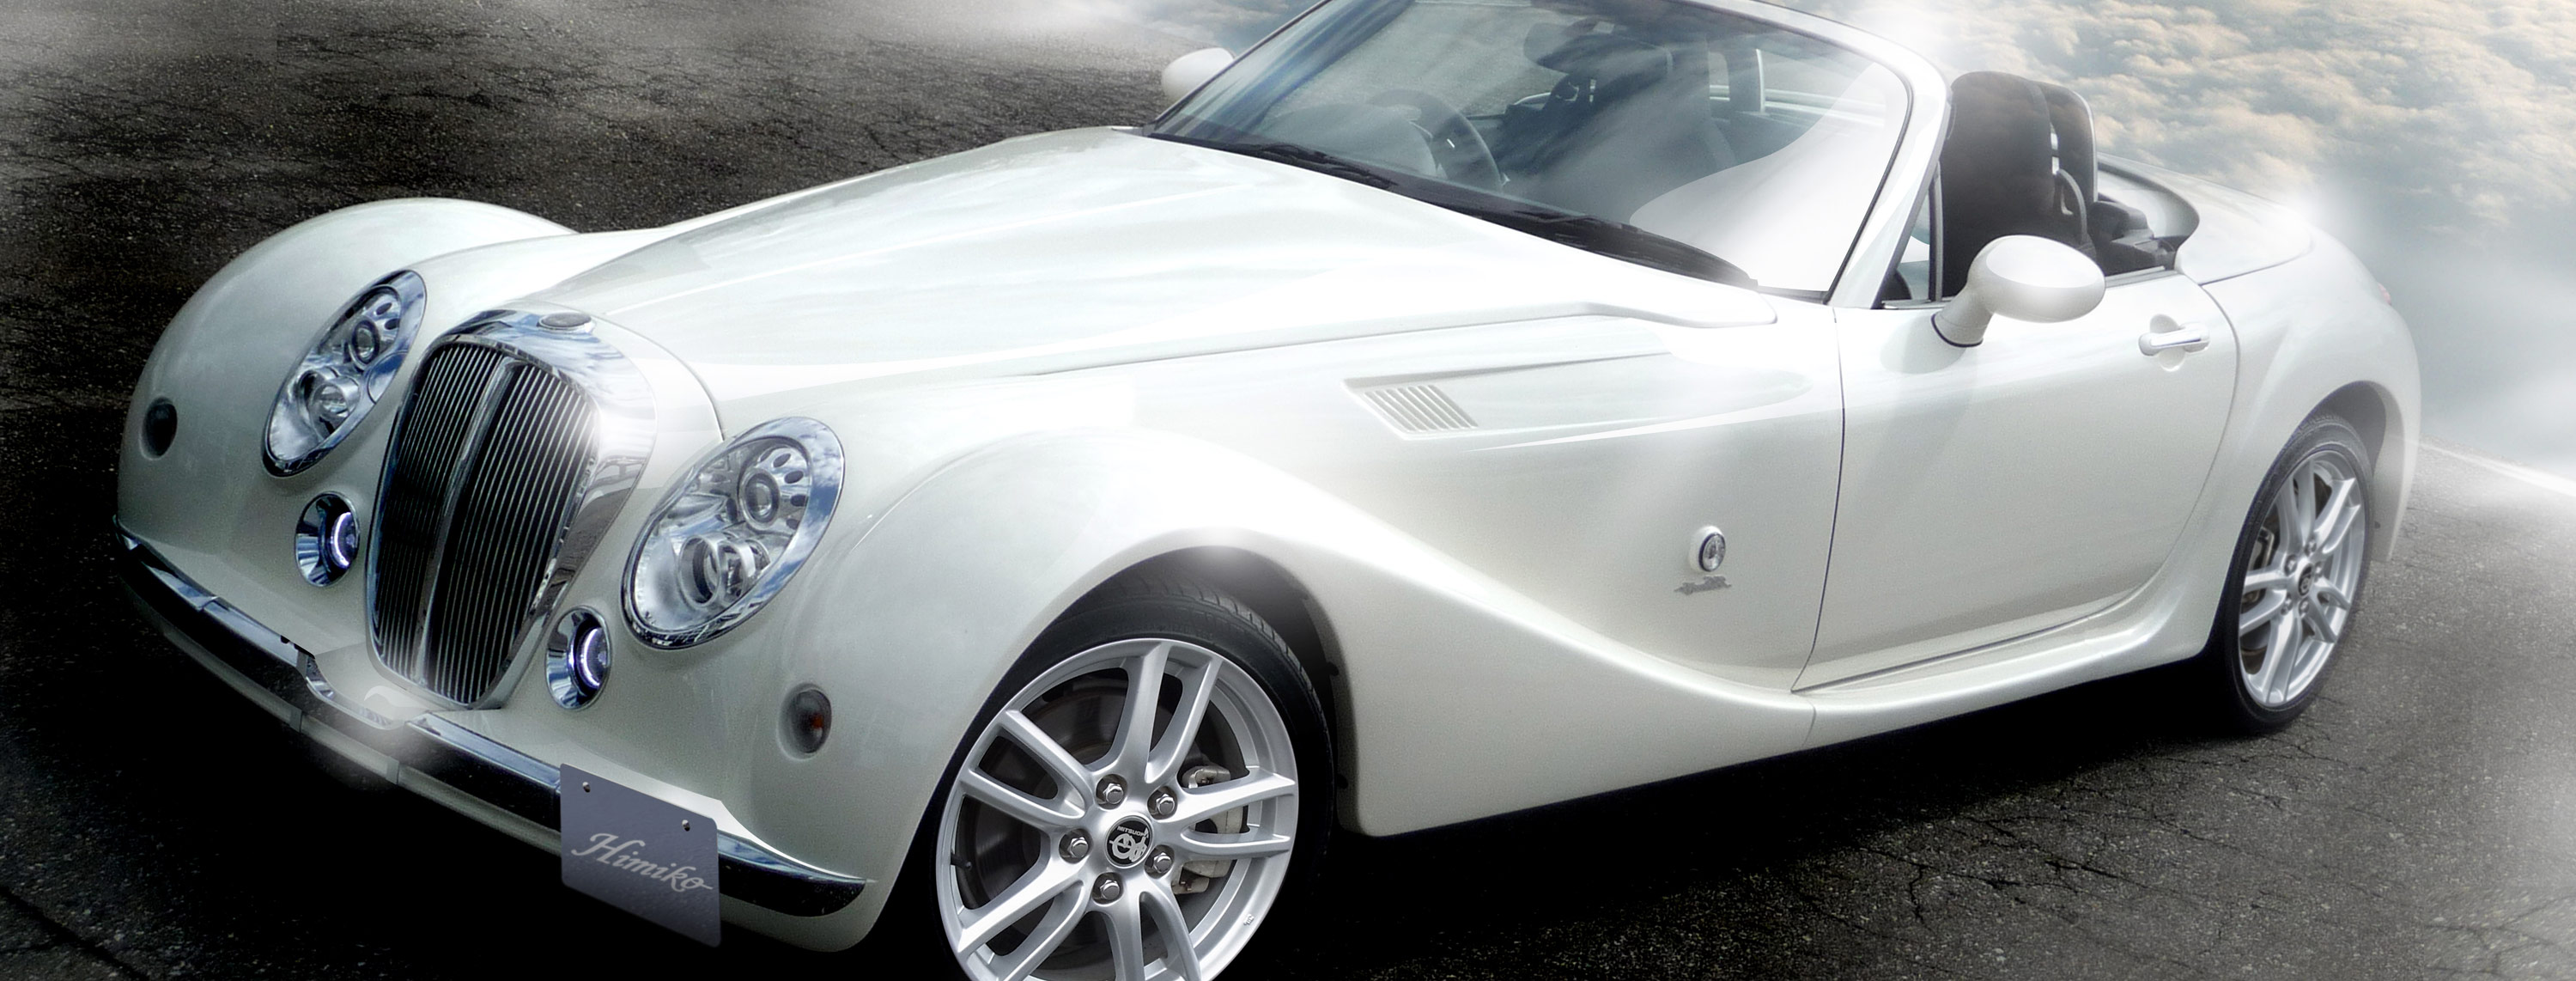 The Mitsuoka Roadster